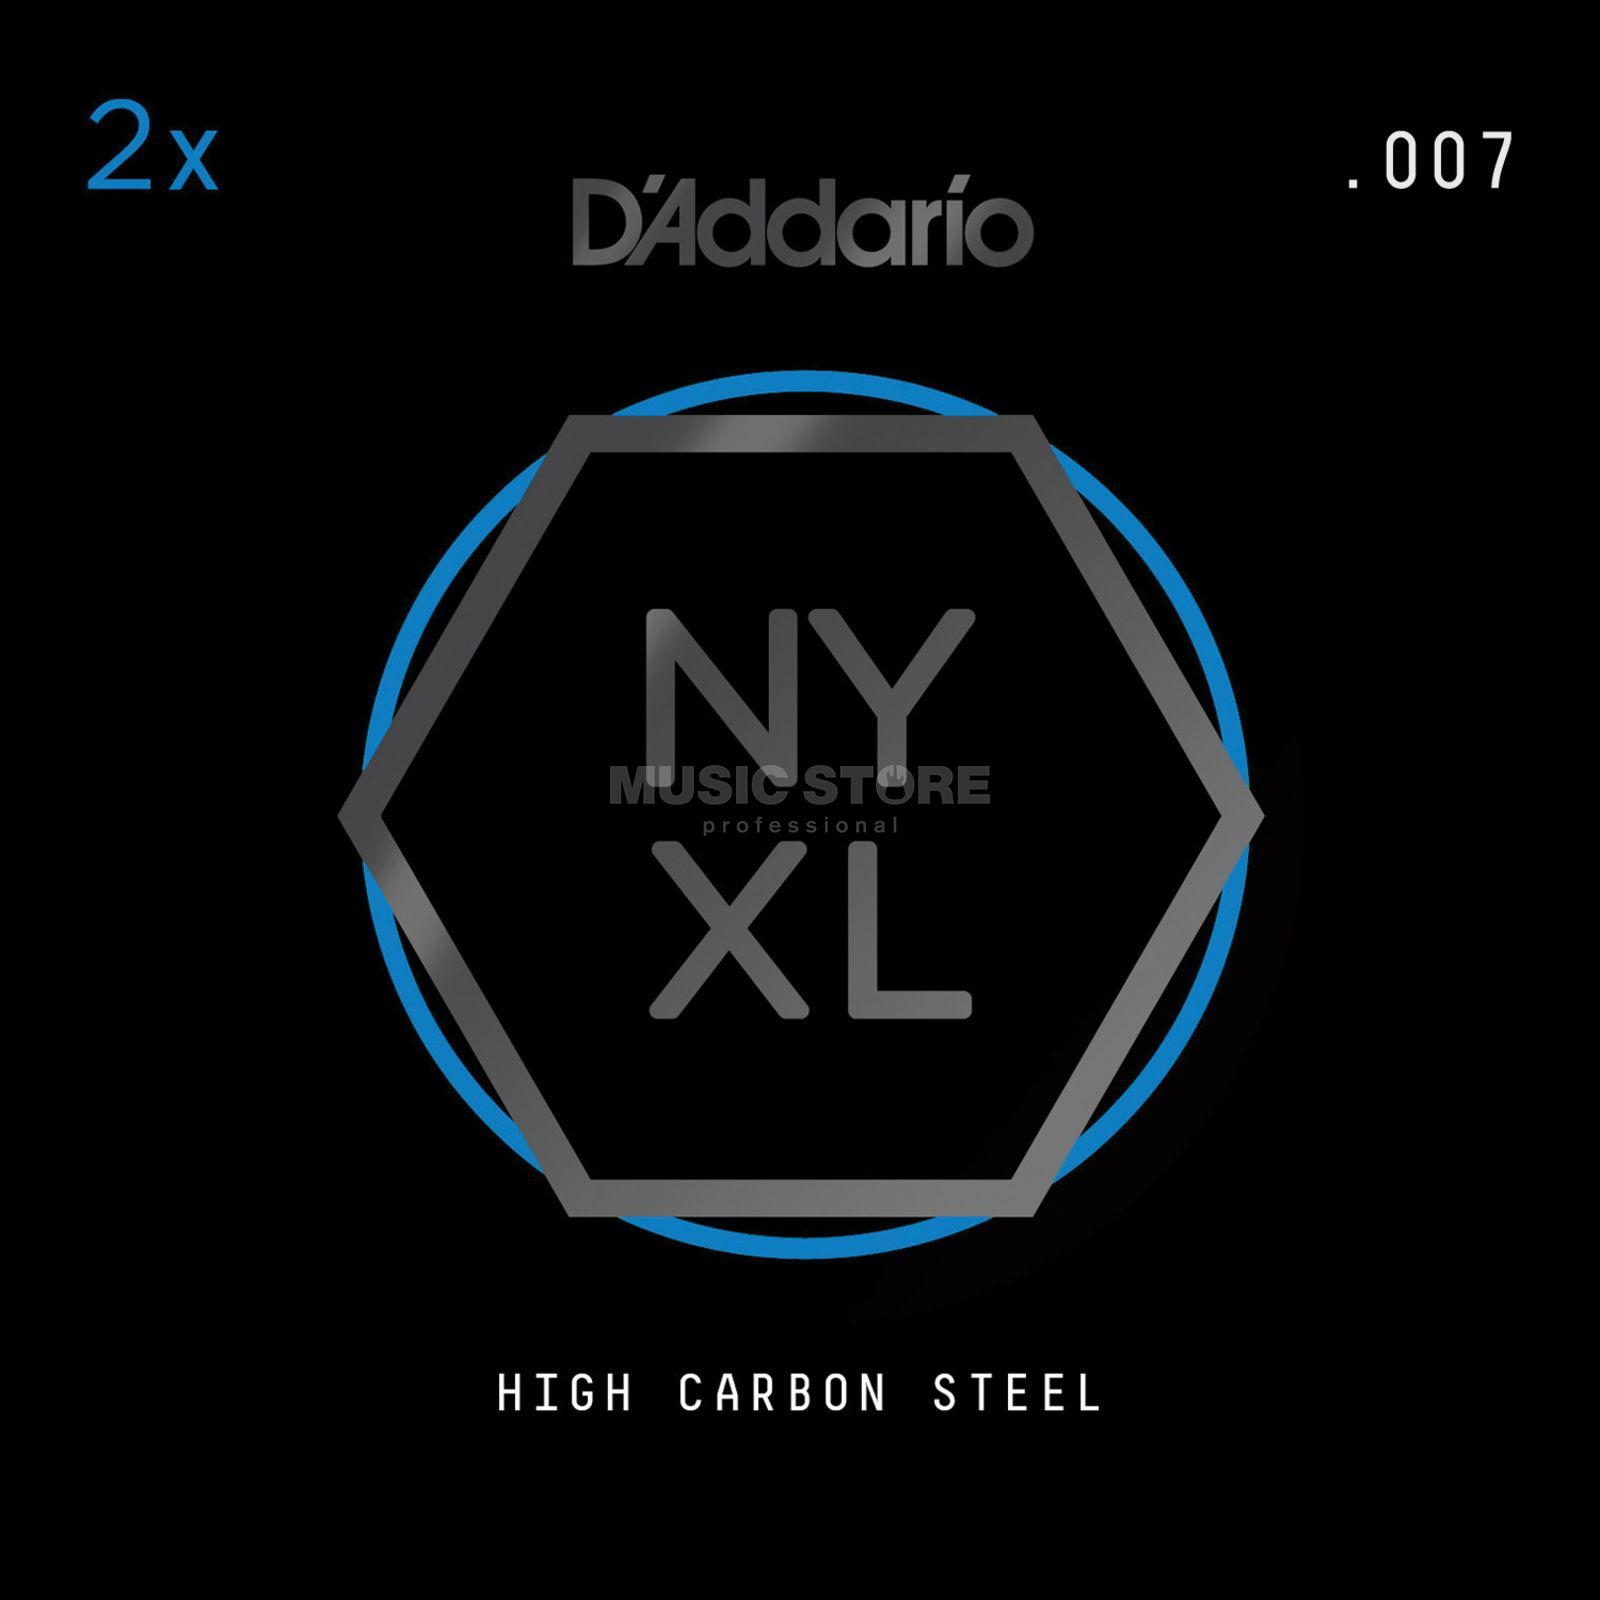 D'Addario NYPL007 Plain Single String 2-Pack - High Carbon Steel Imagen del producto